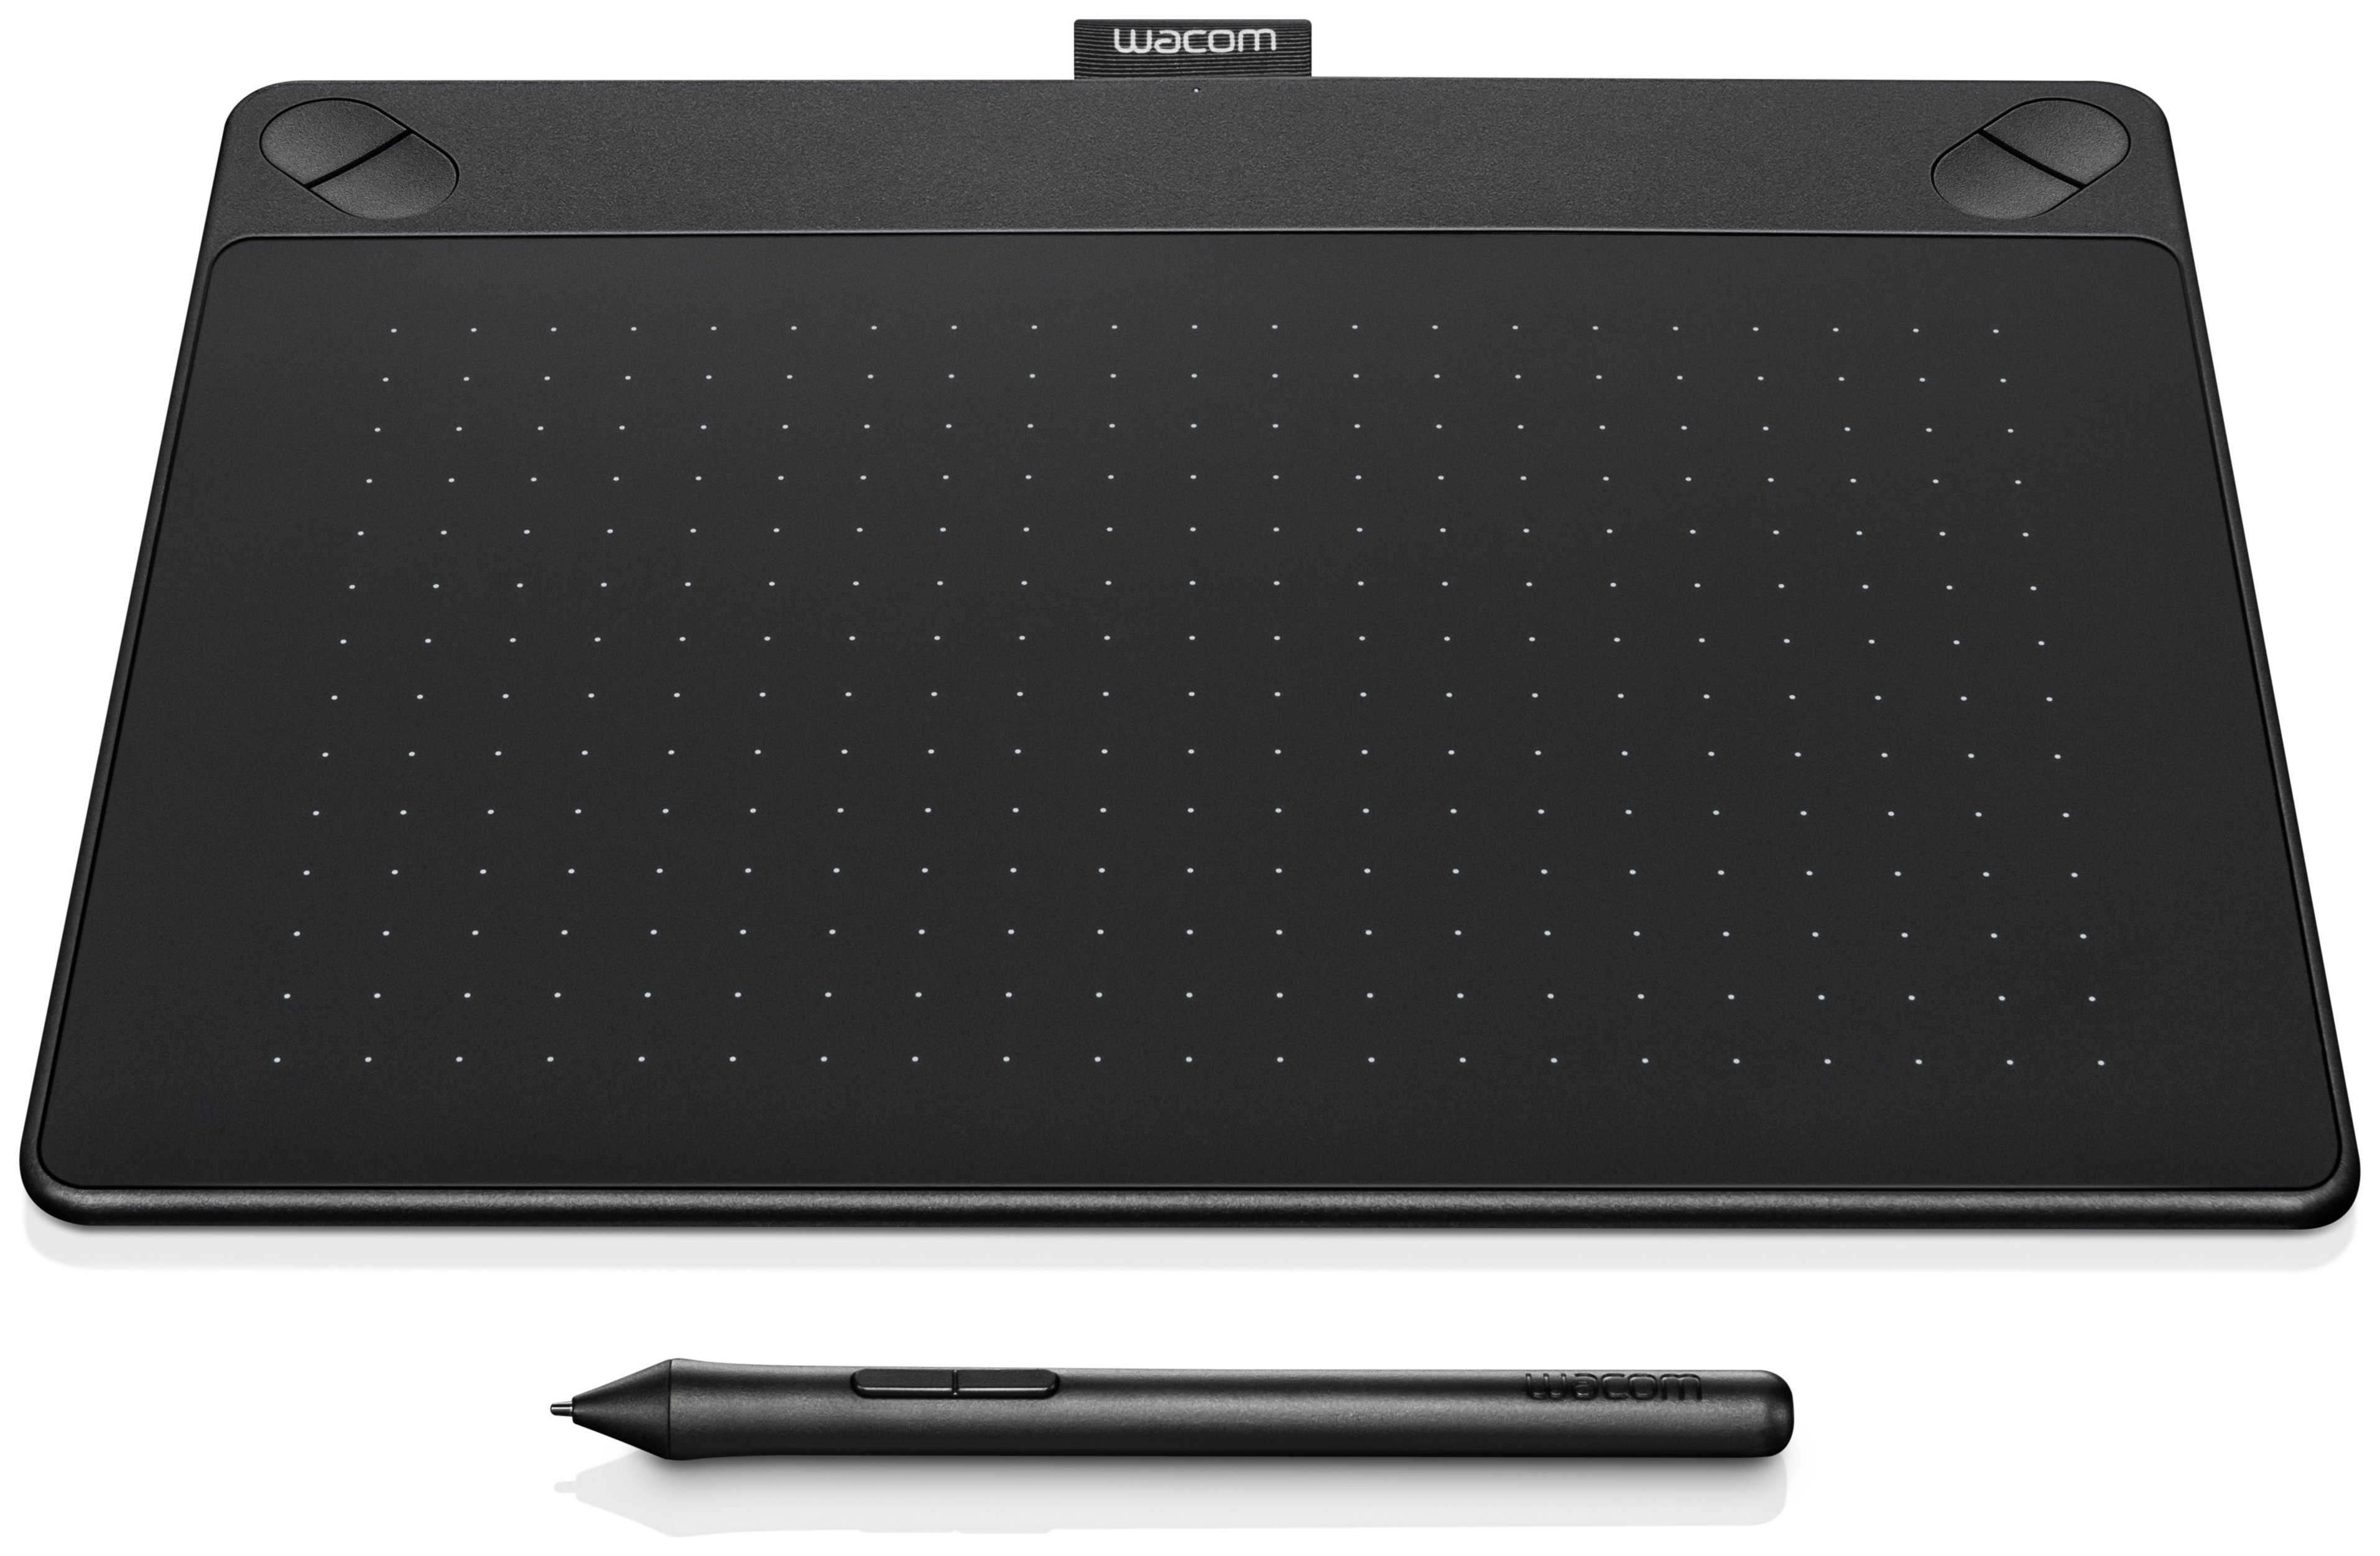 Image of Wacom - Intuos 3D Pen and Touch Medium Graphics Tablet